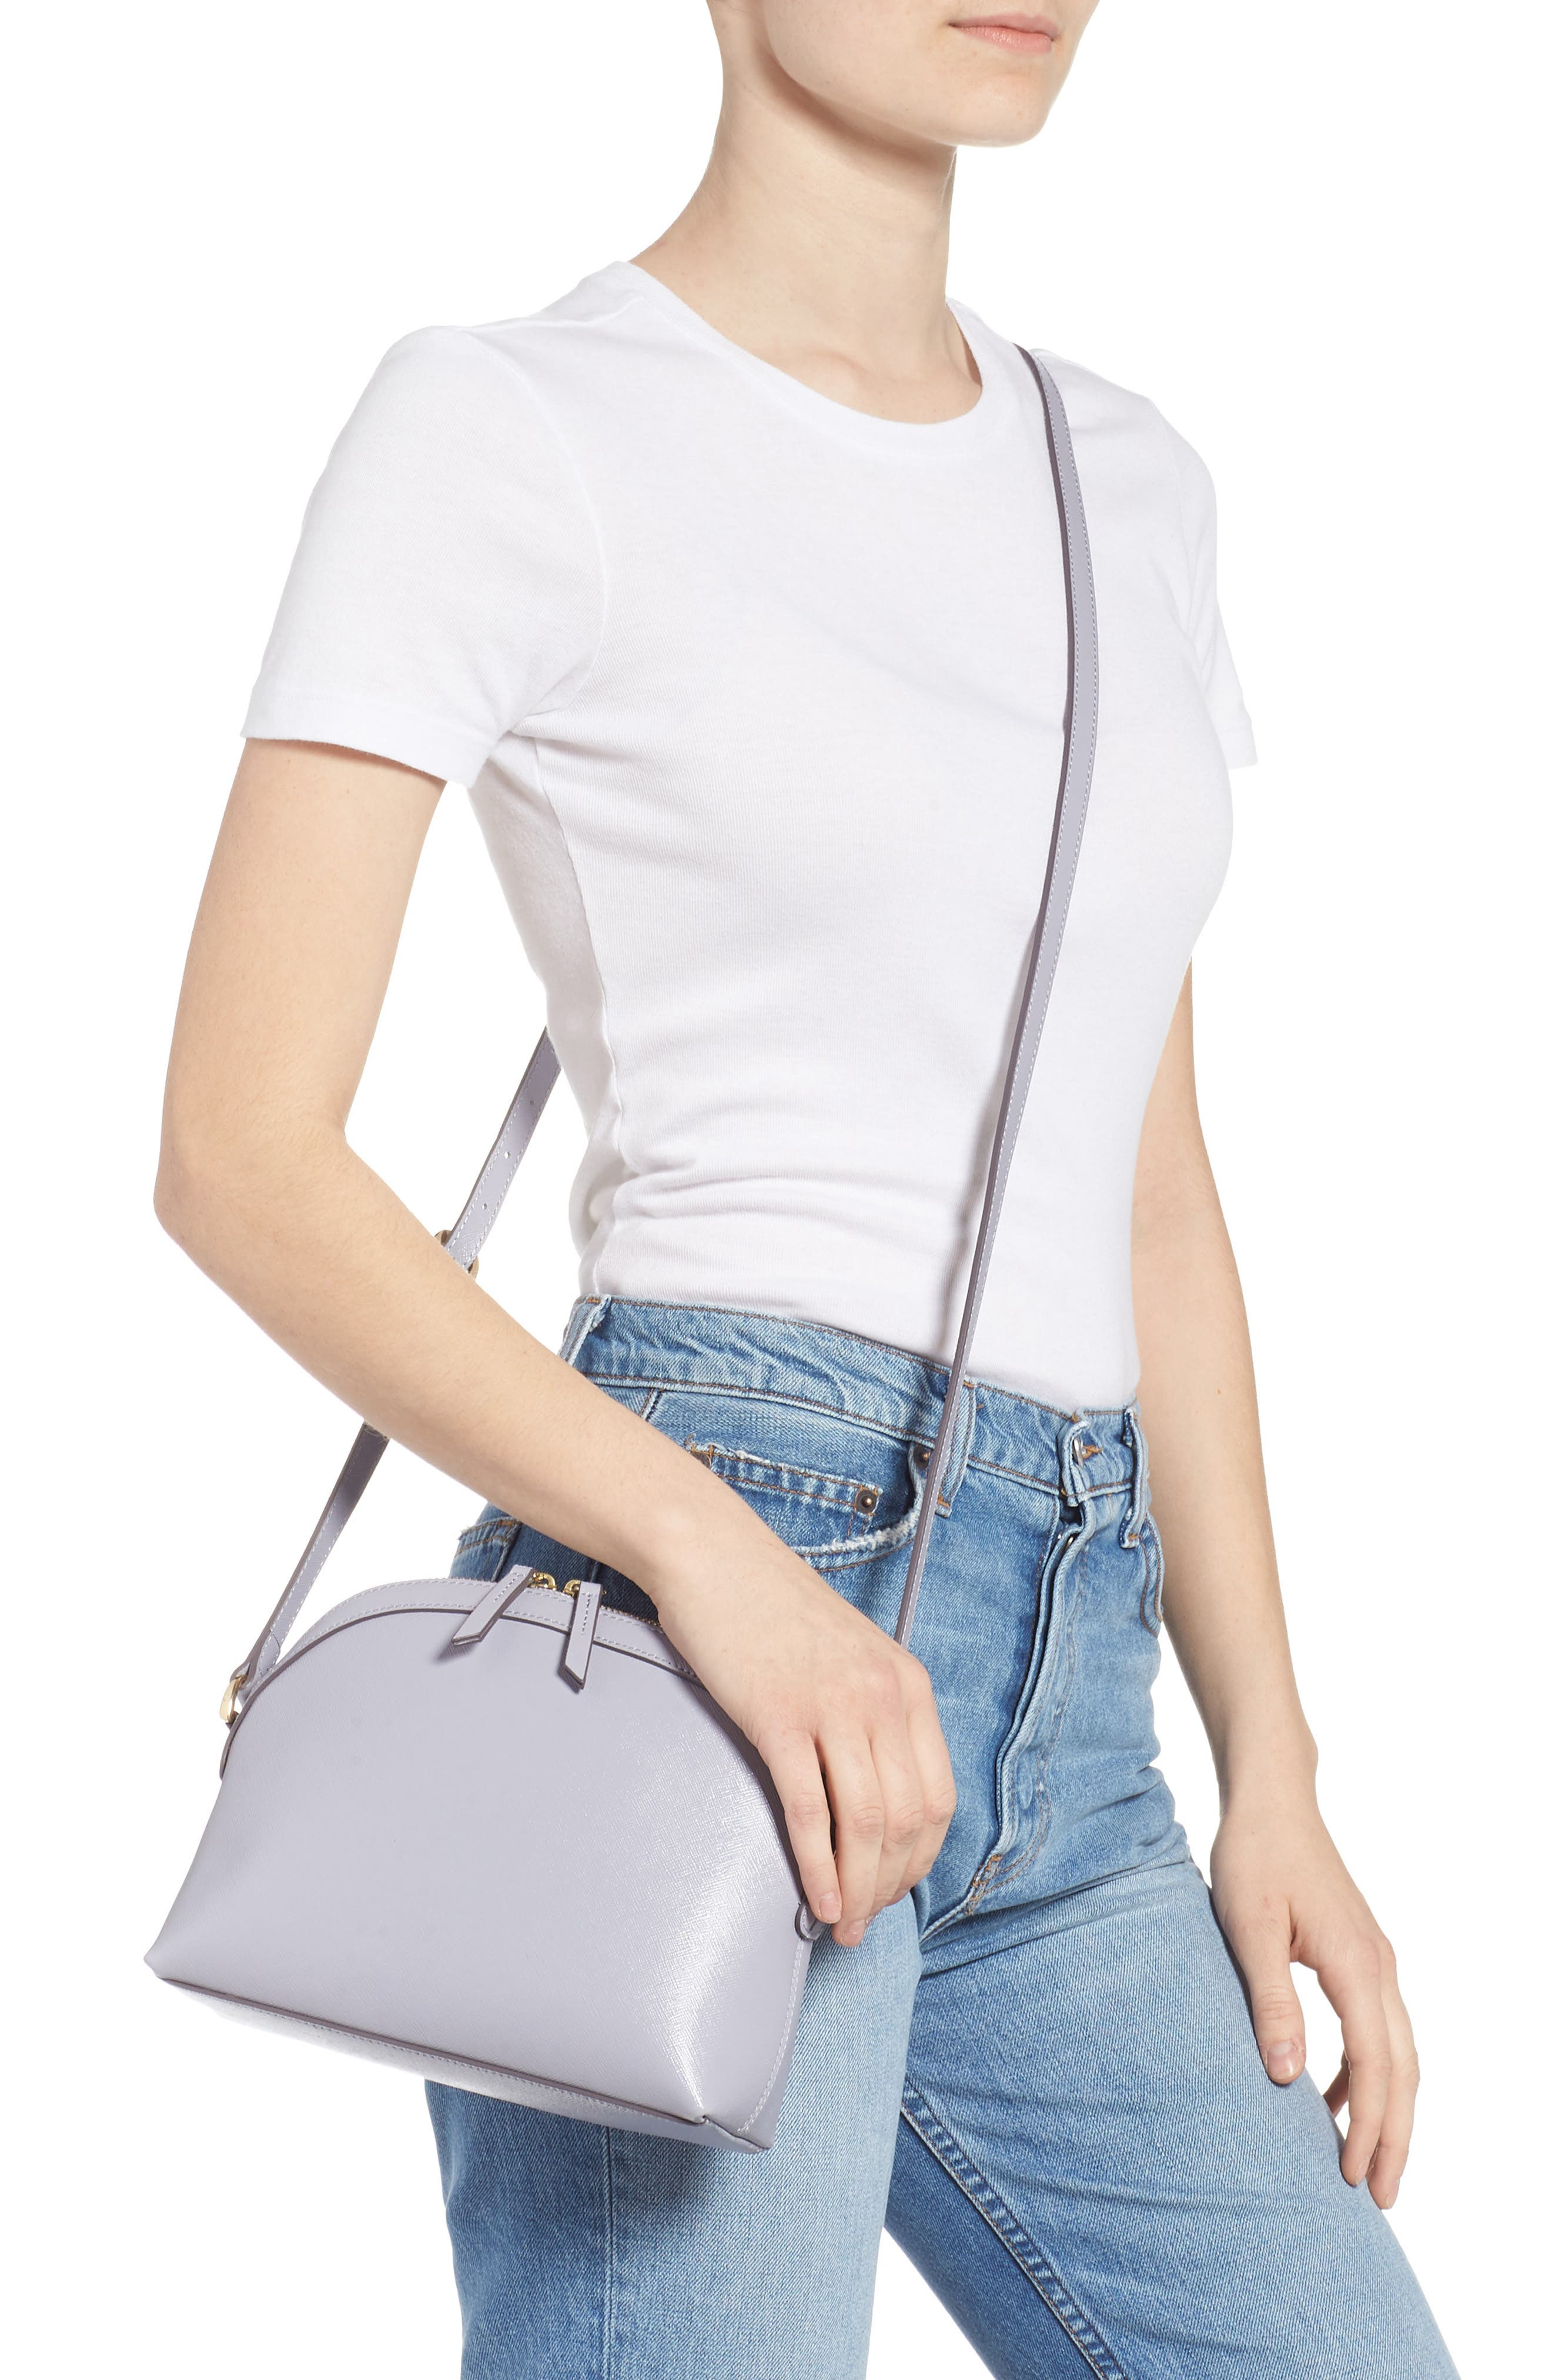 Isobel Half Moon Leather Crossbody Bag,                             Alternate thumbnail 2, color,                             GREY LILAC